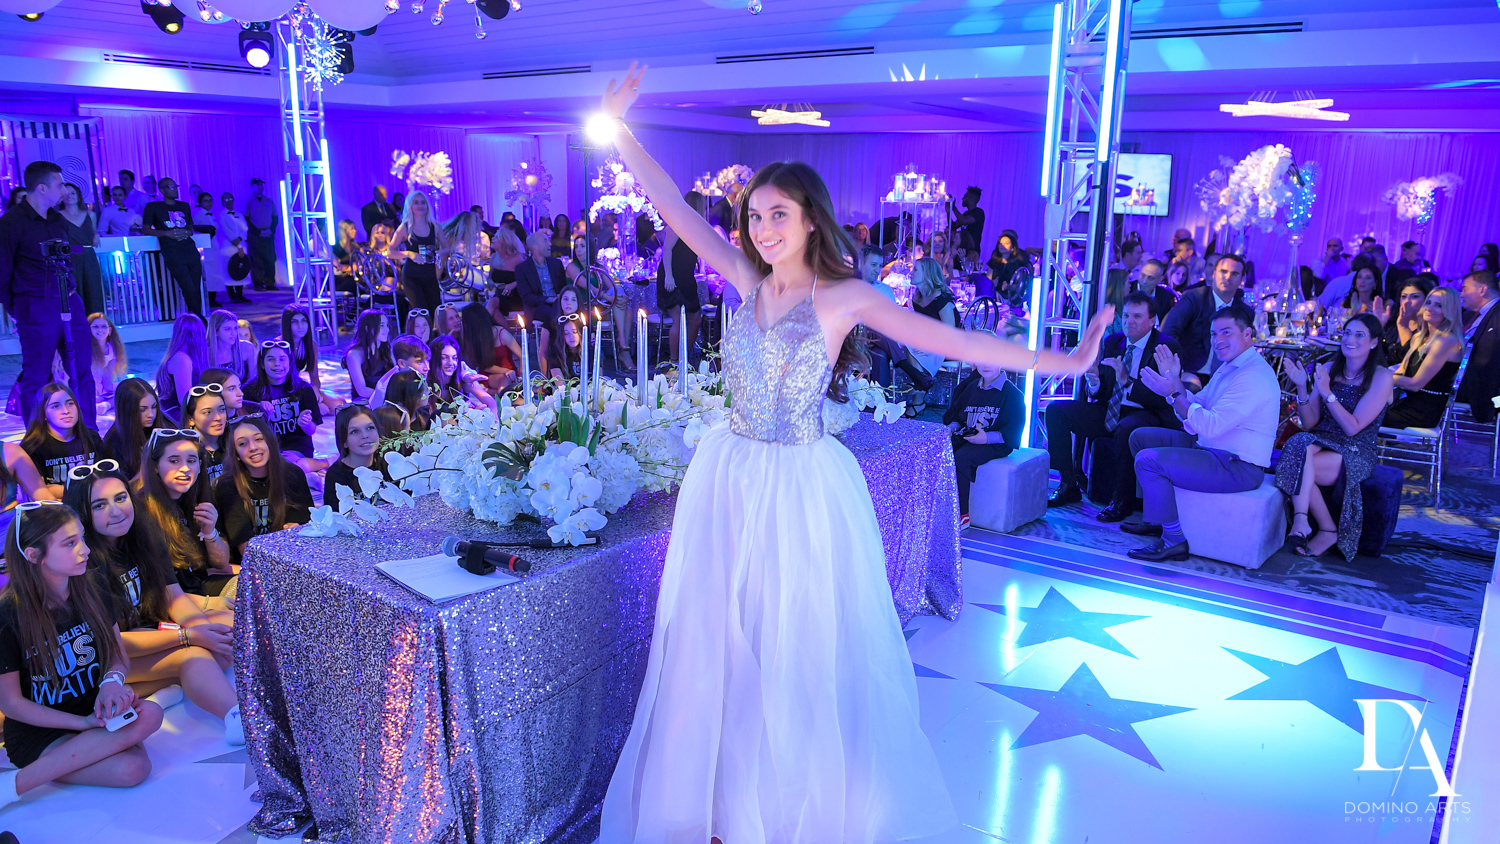 candle lighting ceremony at Trendy Decor Bat Mitzvah at St Andrews Country Club by Domino Arts Photography